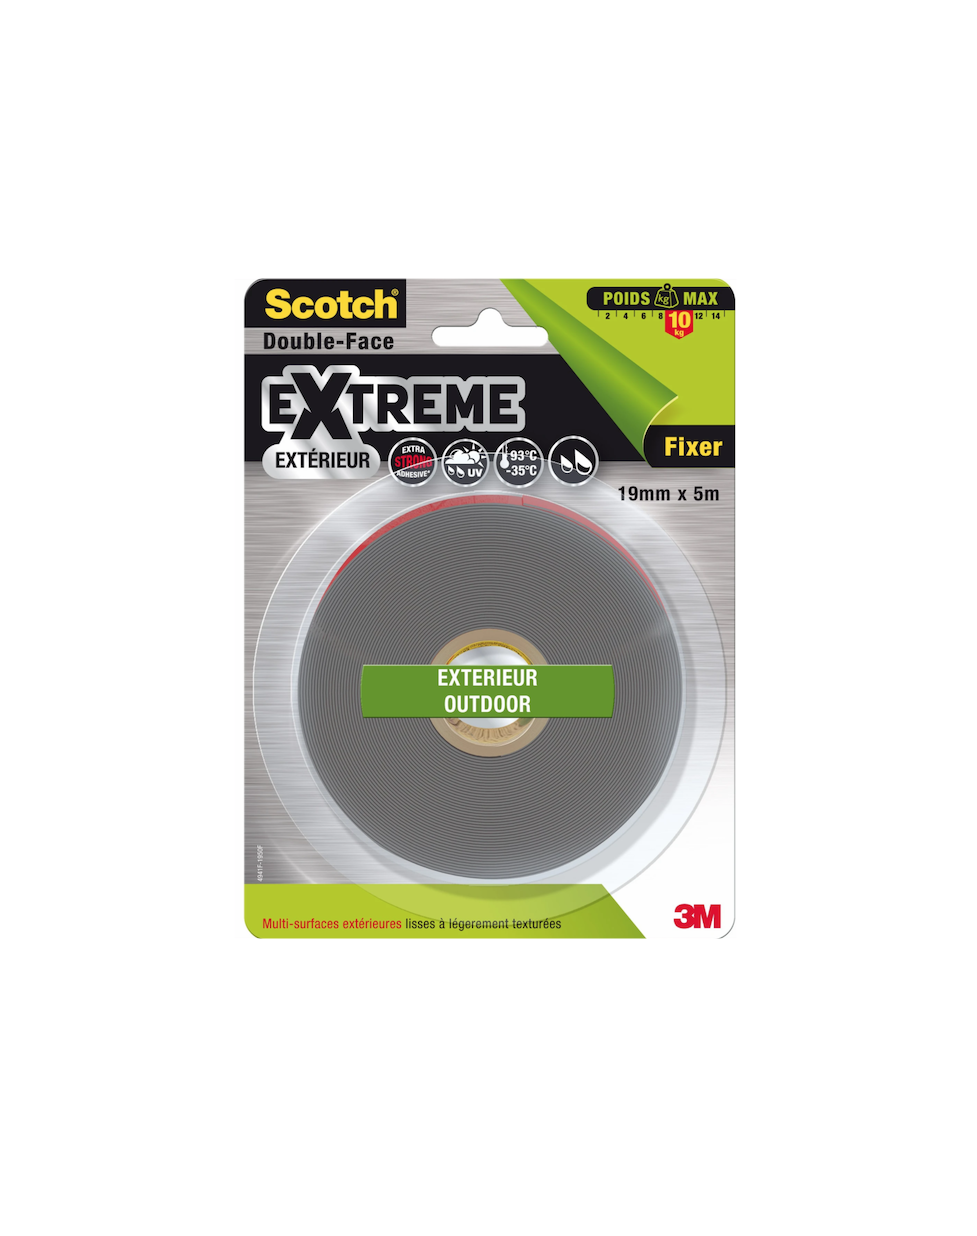 SCOTCH DOUBLE FACE EXTREME EXTERIEUR MULTI-USAGE 5902658111754 FIXATION ADHESIVE BOITES AUX LETTRES ADHESIF 7Kg  OUT SIDE 19mm x 5m BRICOLAGE COMASOUND KARTEL